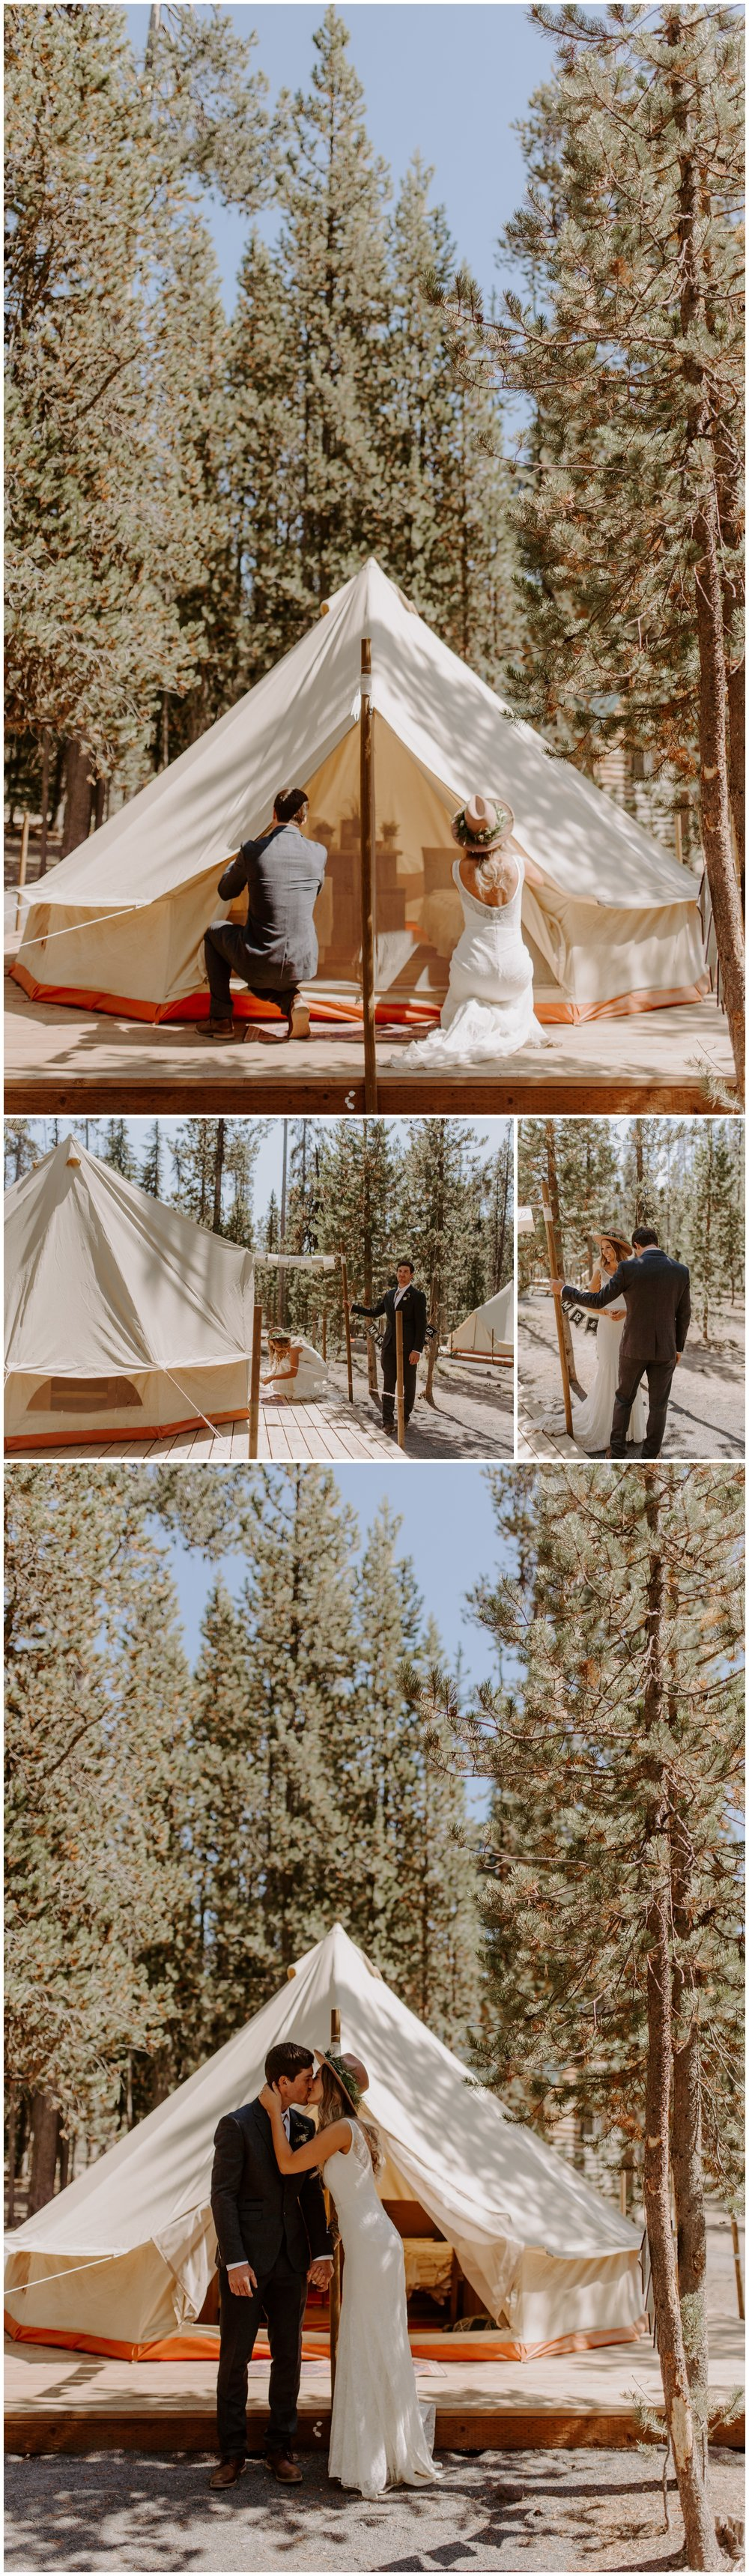 Bend Boho Campsite Wedding Eastern Oregon - Jessica Heron Images_0054.jpg